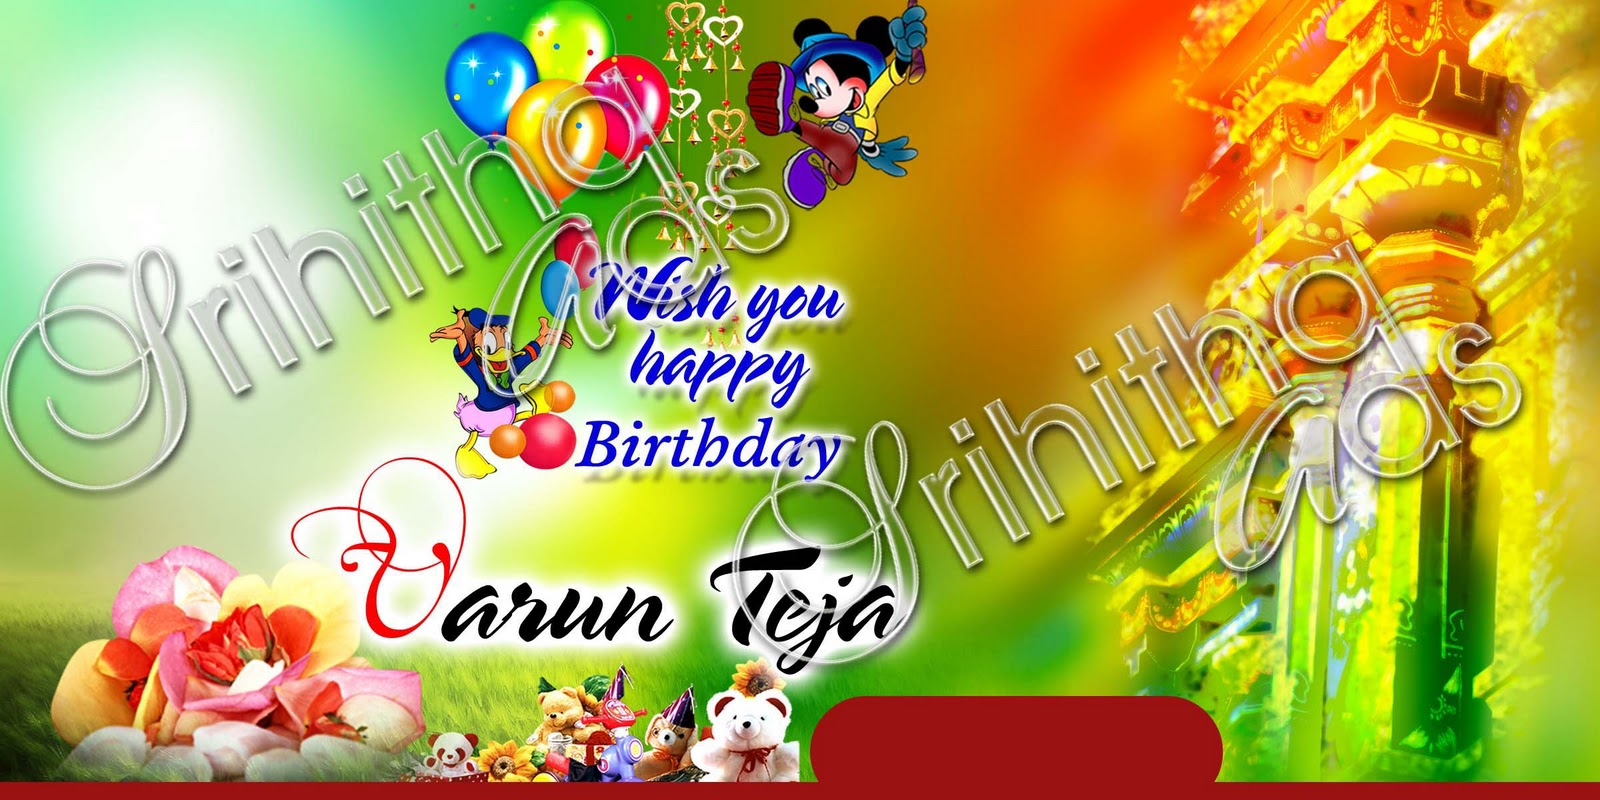 birthday banner psd templates free download ; 1